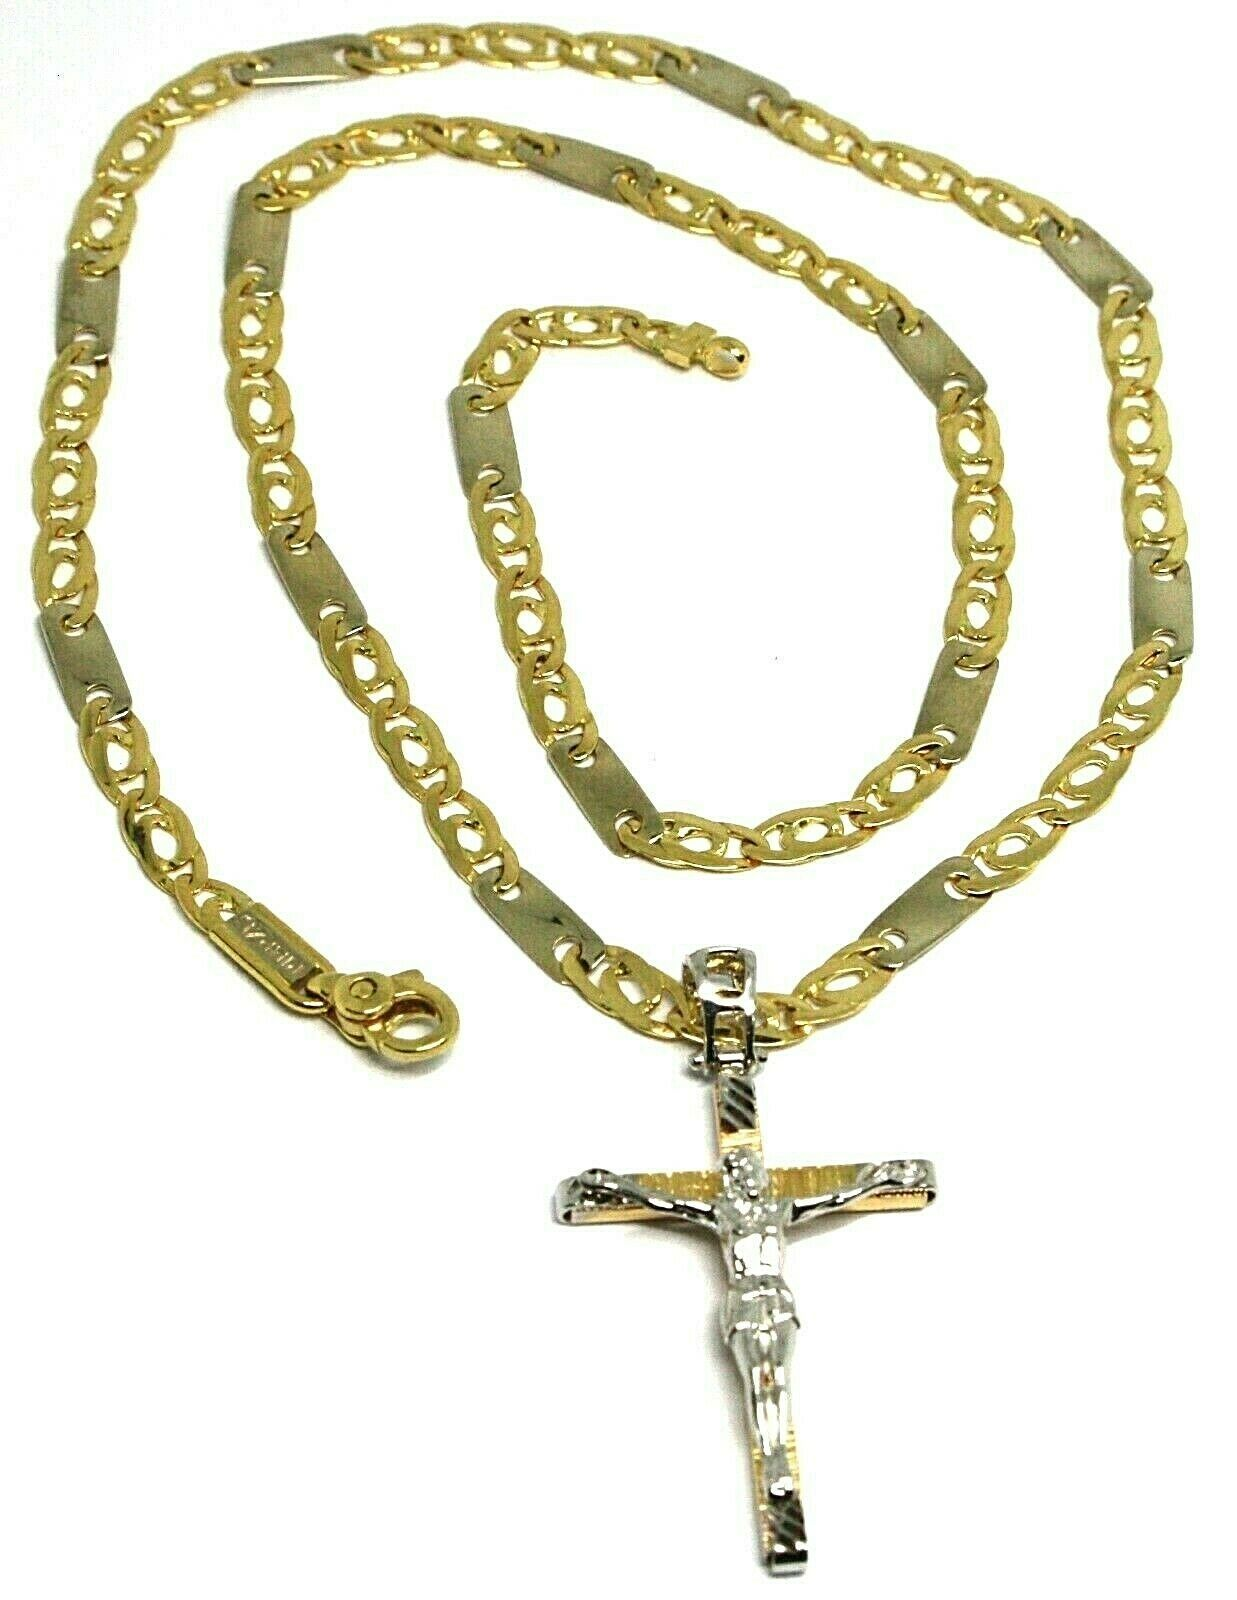 18K YELLOW WHITE GOLD FLAT ALTERNATE CHAIN, 20 INCHES & WORKED JESUS CROSS